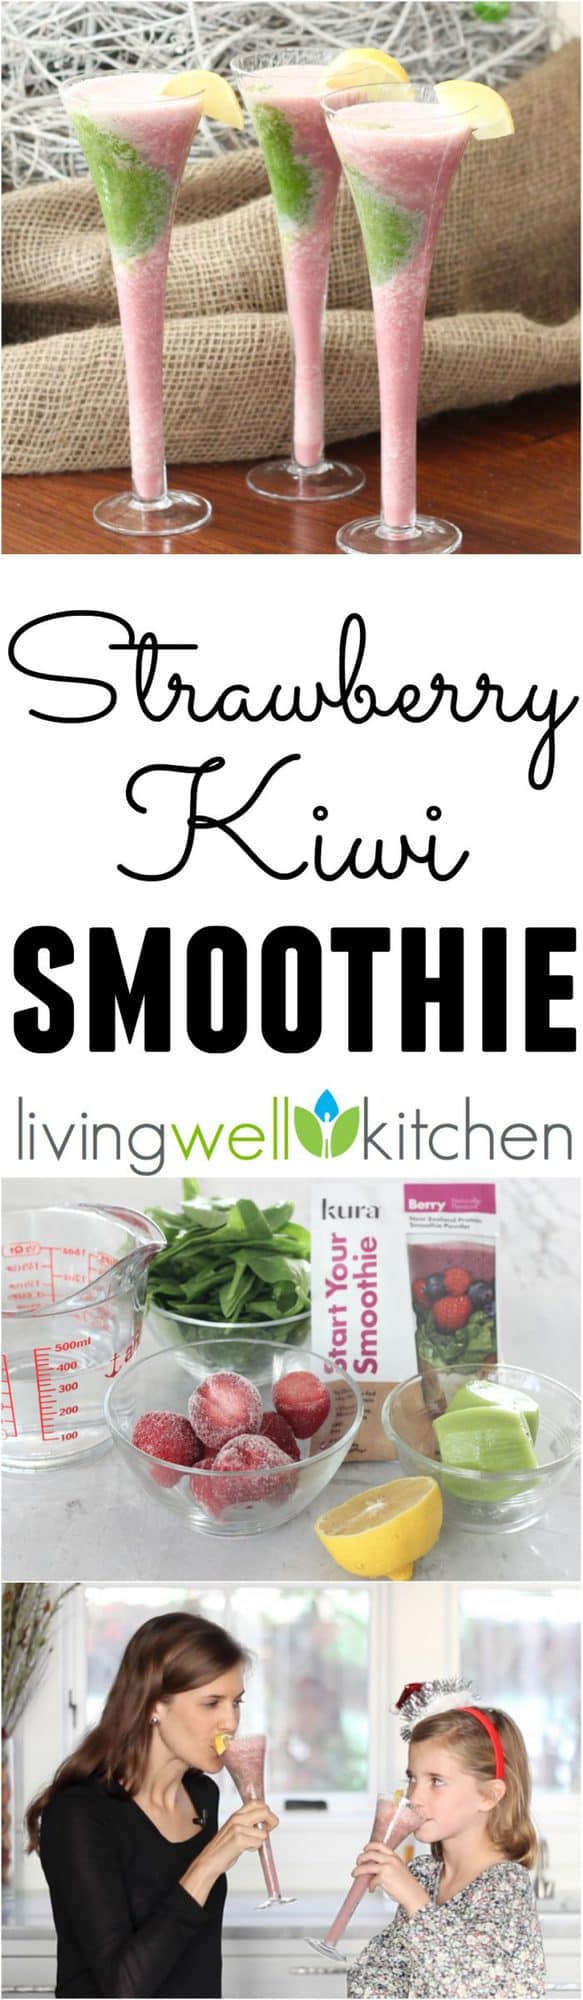 ad: Don't let the holiday rush keep you from filling your body with nourishing meals & snacks. This Strawberry Kiwi Smoothie recipe from @memeinge only has five ingredients and they all pack a nutritious punch! Great for a healthy breakfast or snack. Sponsored by @kuranutrition